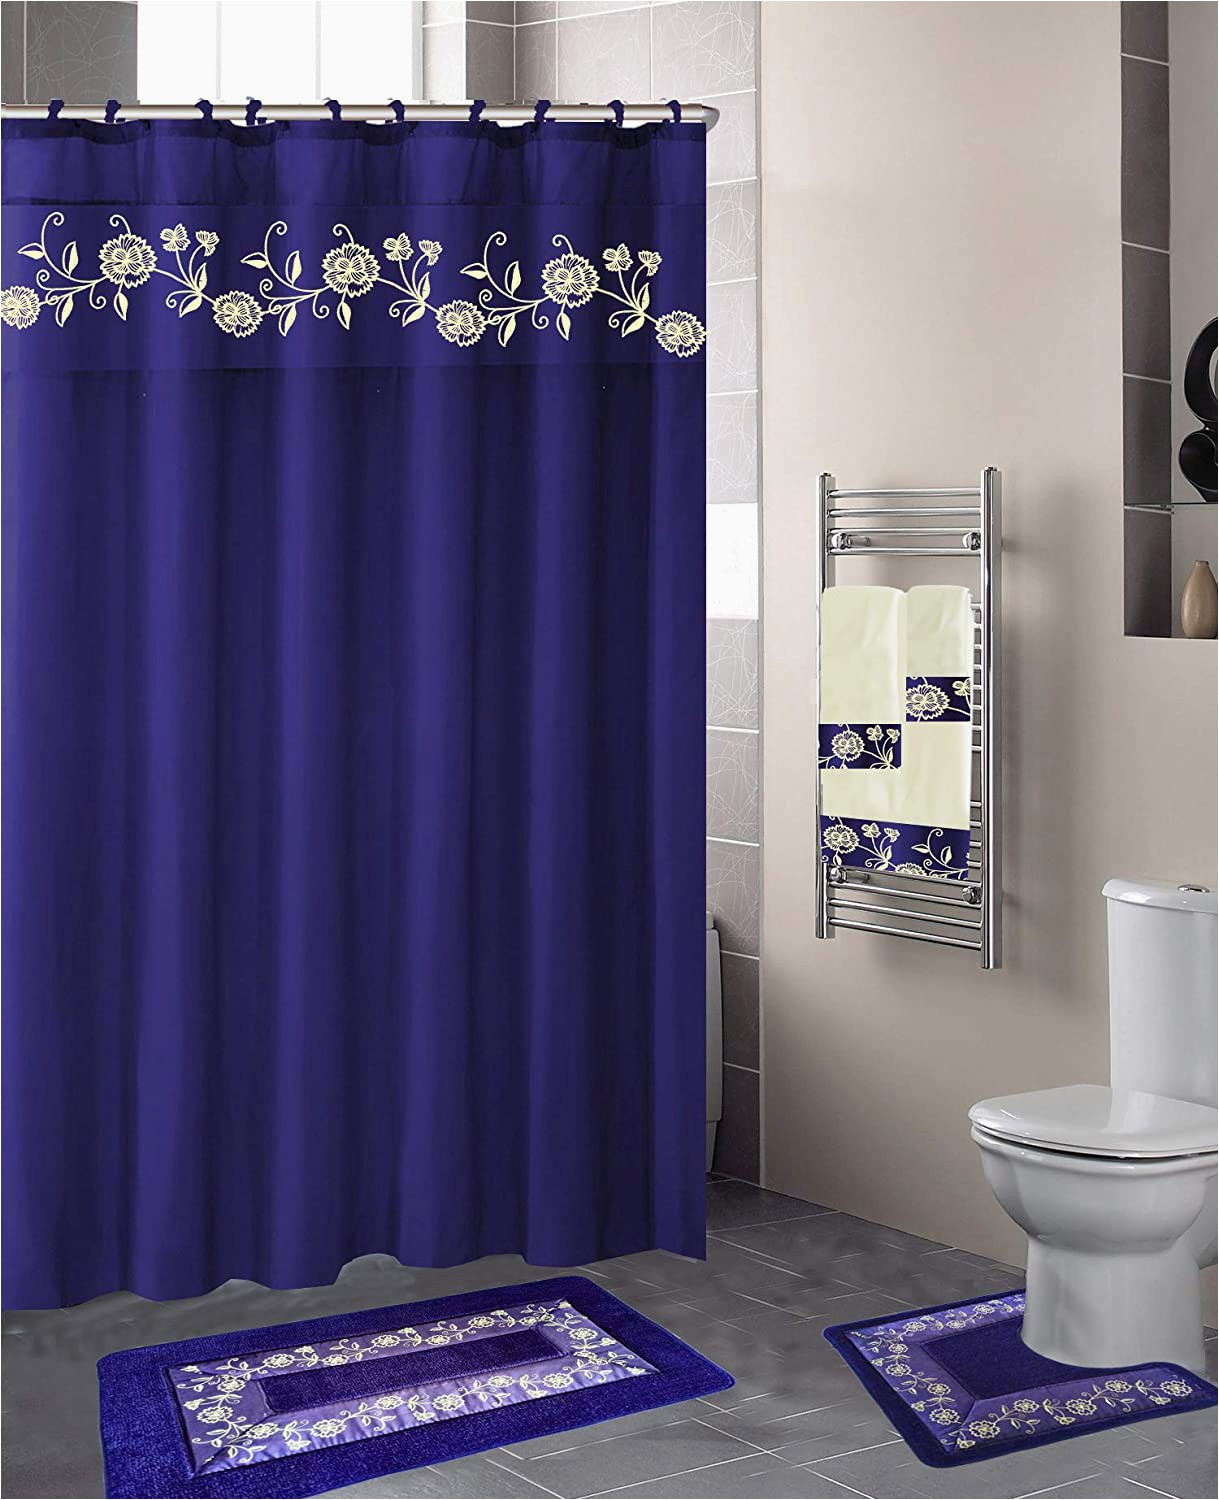 Royal Blue Bath Rug Sets Luxury Home Collection 18 Pc Bath Rug Set Embroidery Non Slip Bathroom Rug Mats and Rug Contour and Shower Curtain and towels and Rings Hooks and